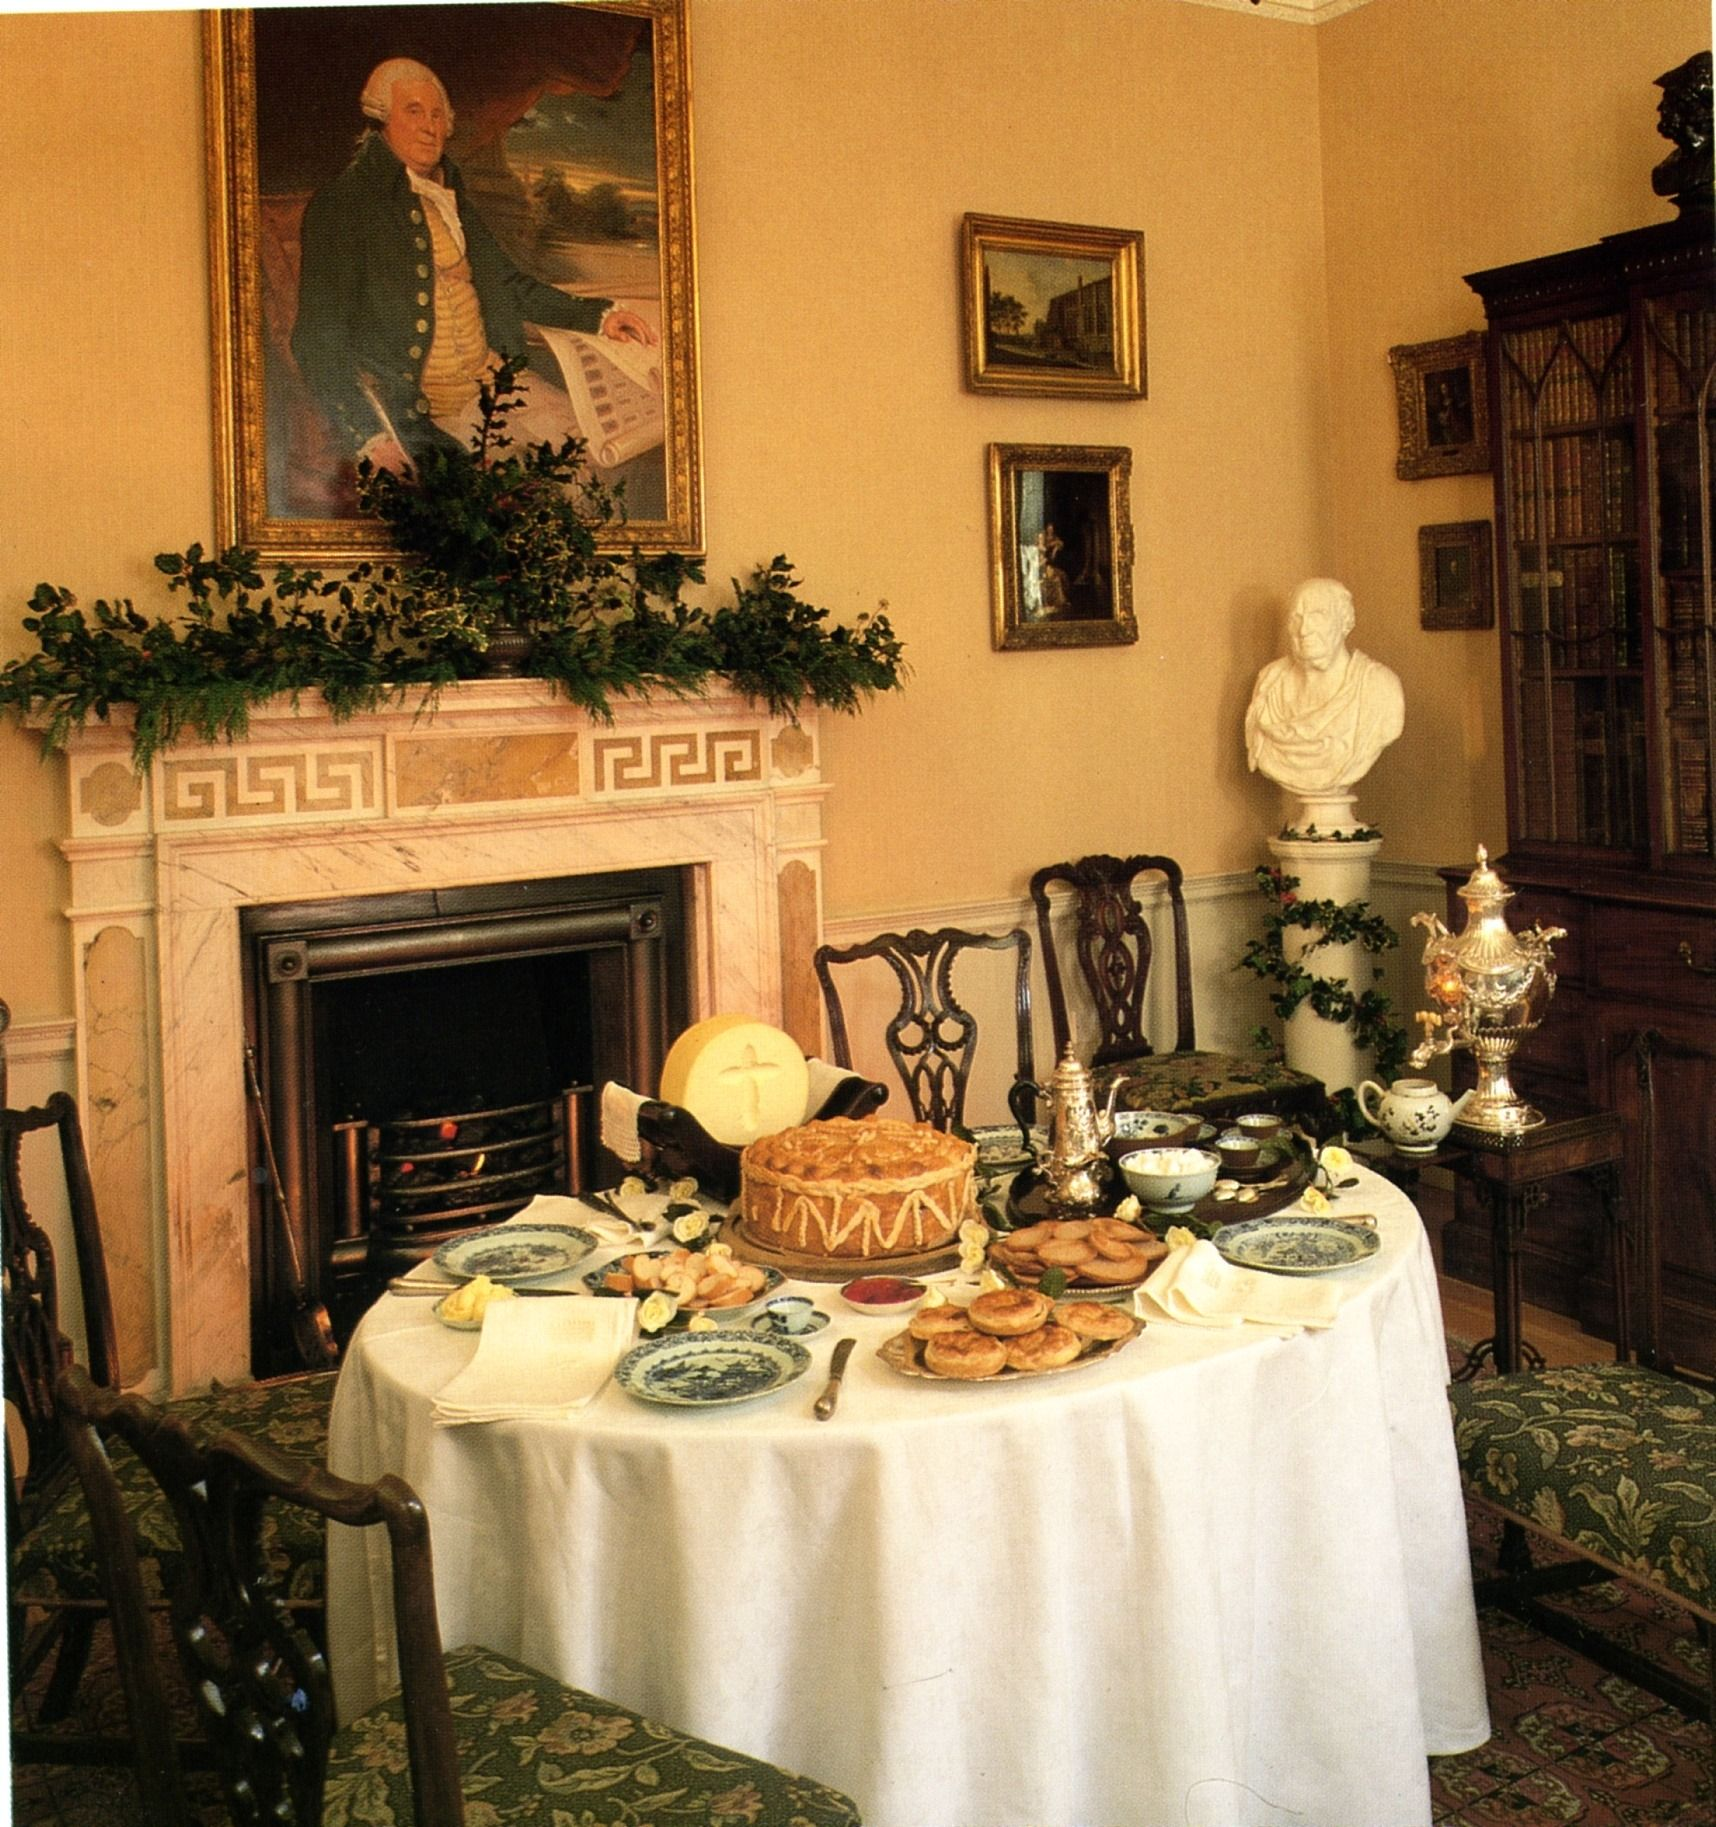 Key Interiors By Shinay Country Dining Room Design Ideas: Jane Austen And Christmas